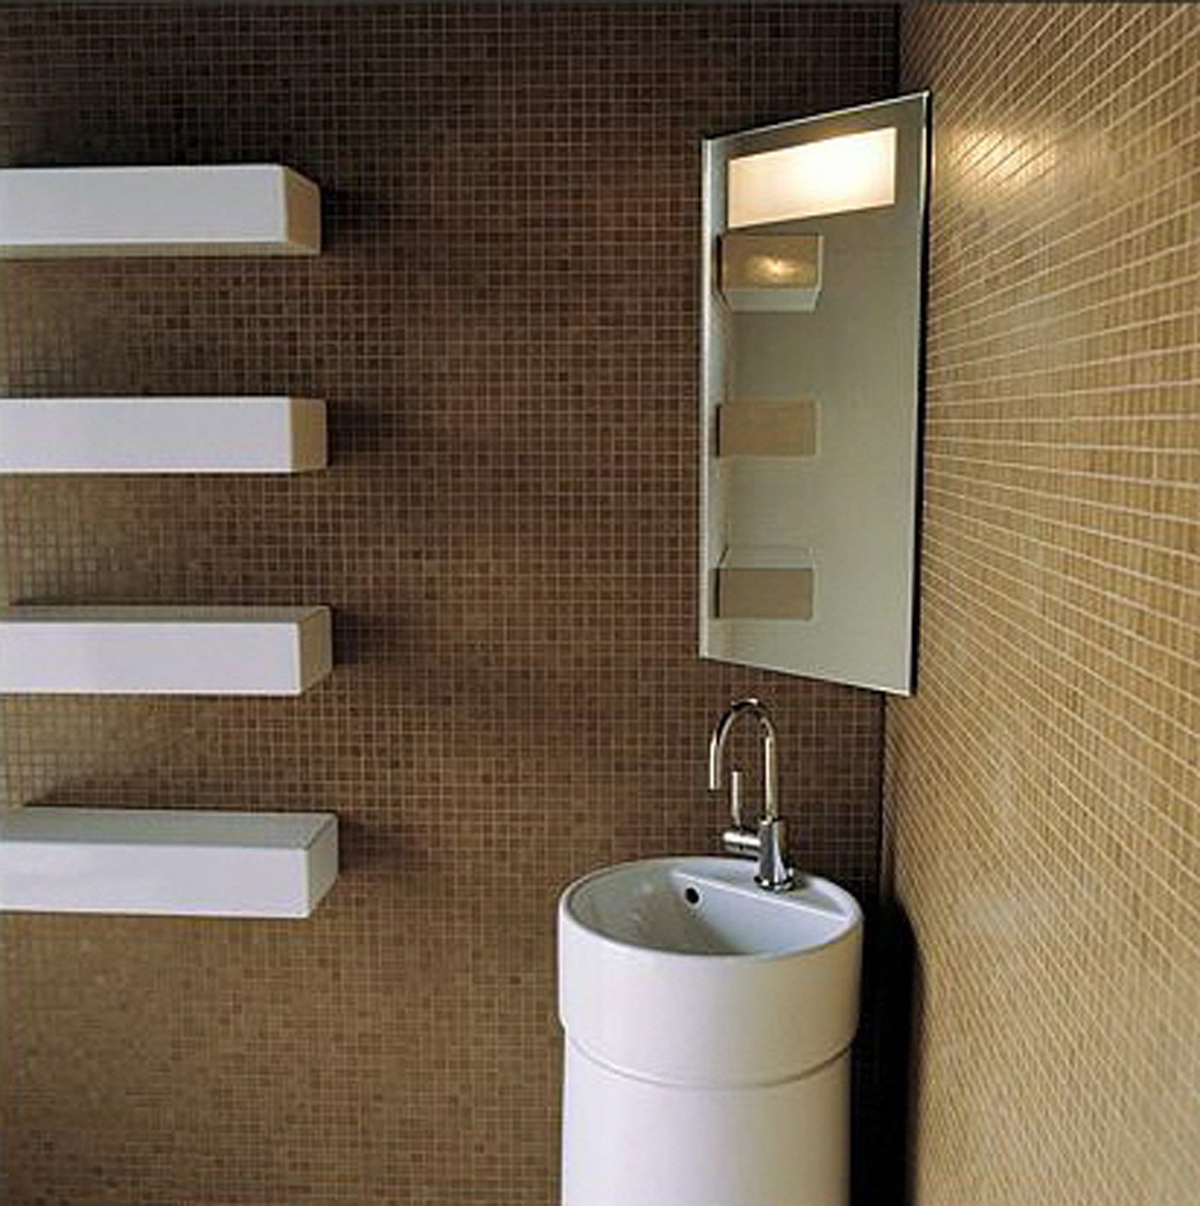 50 Magnificent Ultra Modern Bathroom Tile Ideas Photos Images - Ultra-modern-bathroom